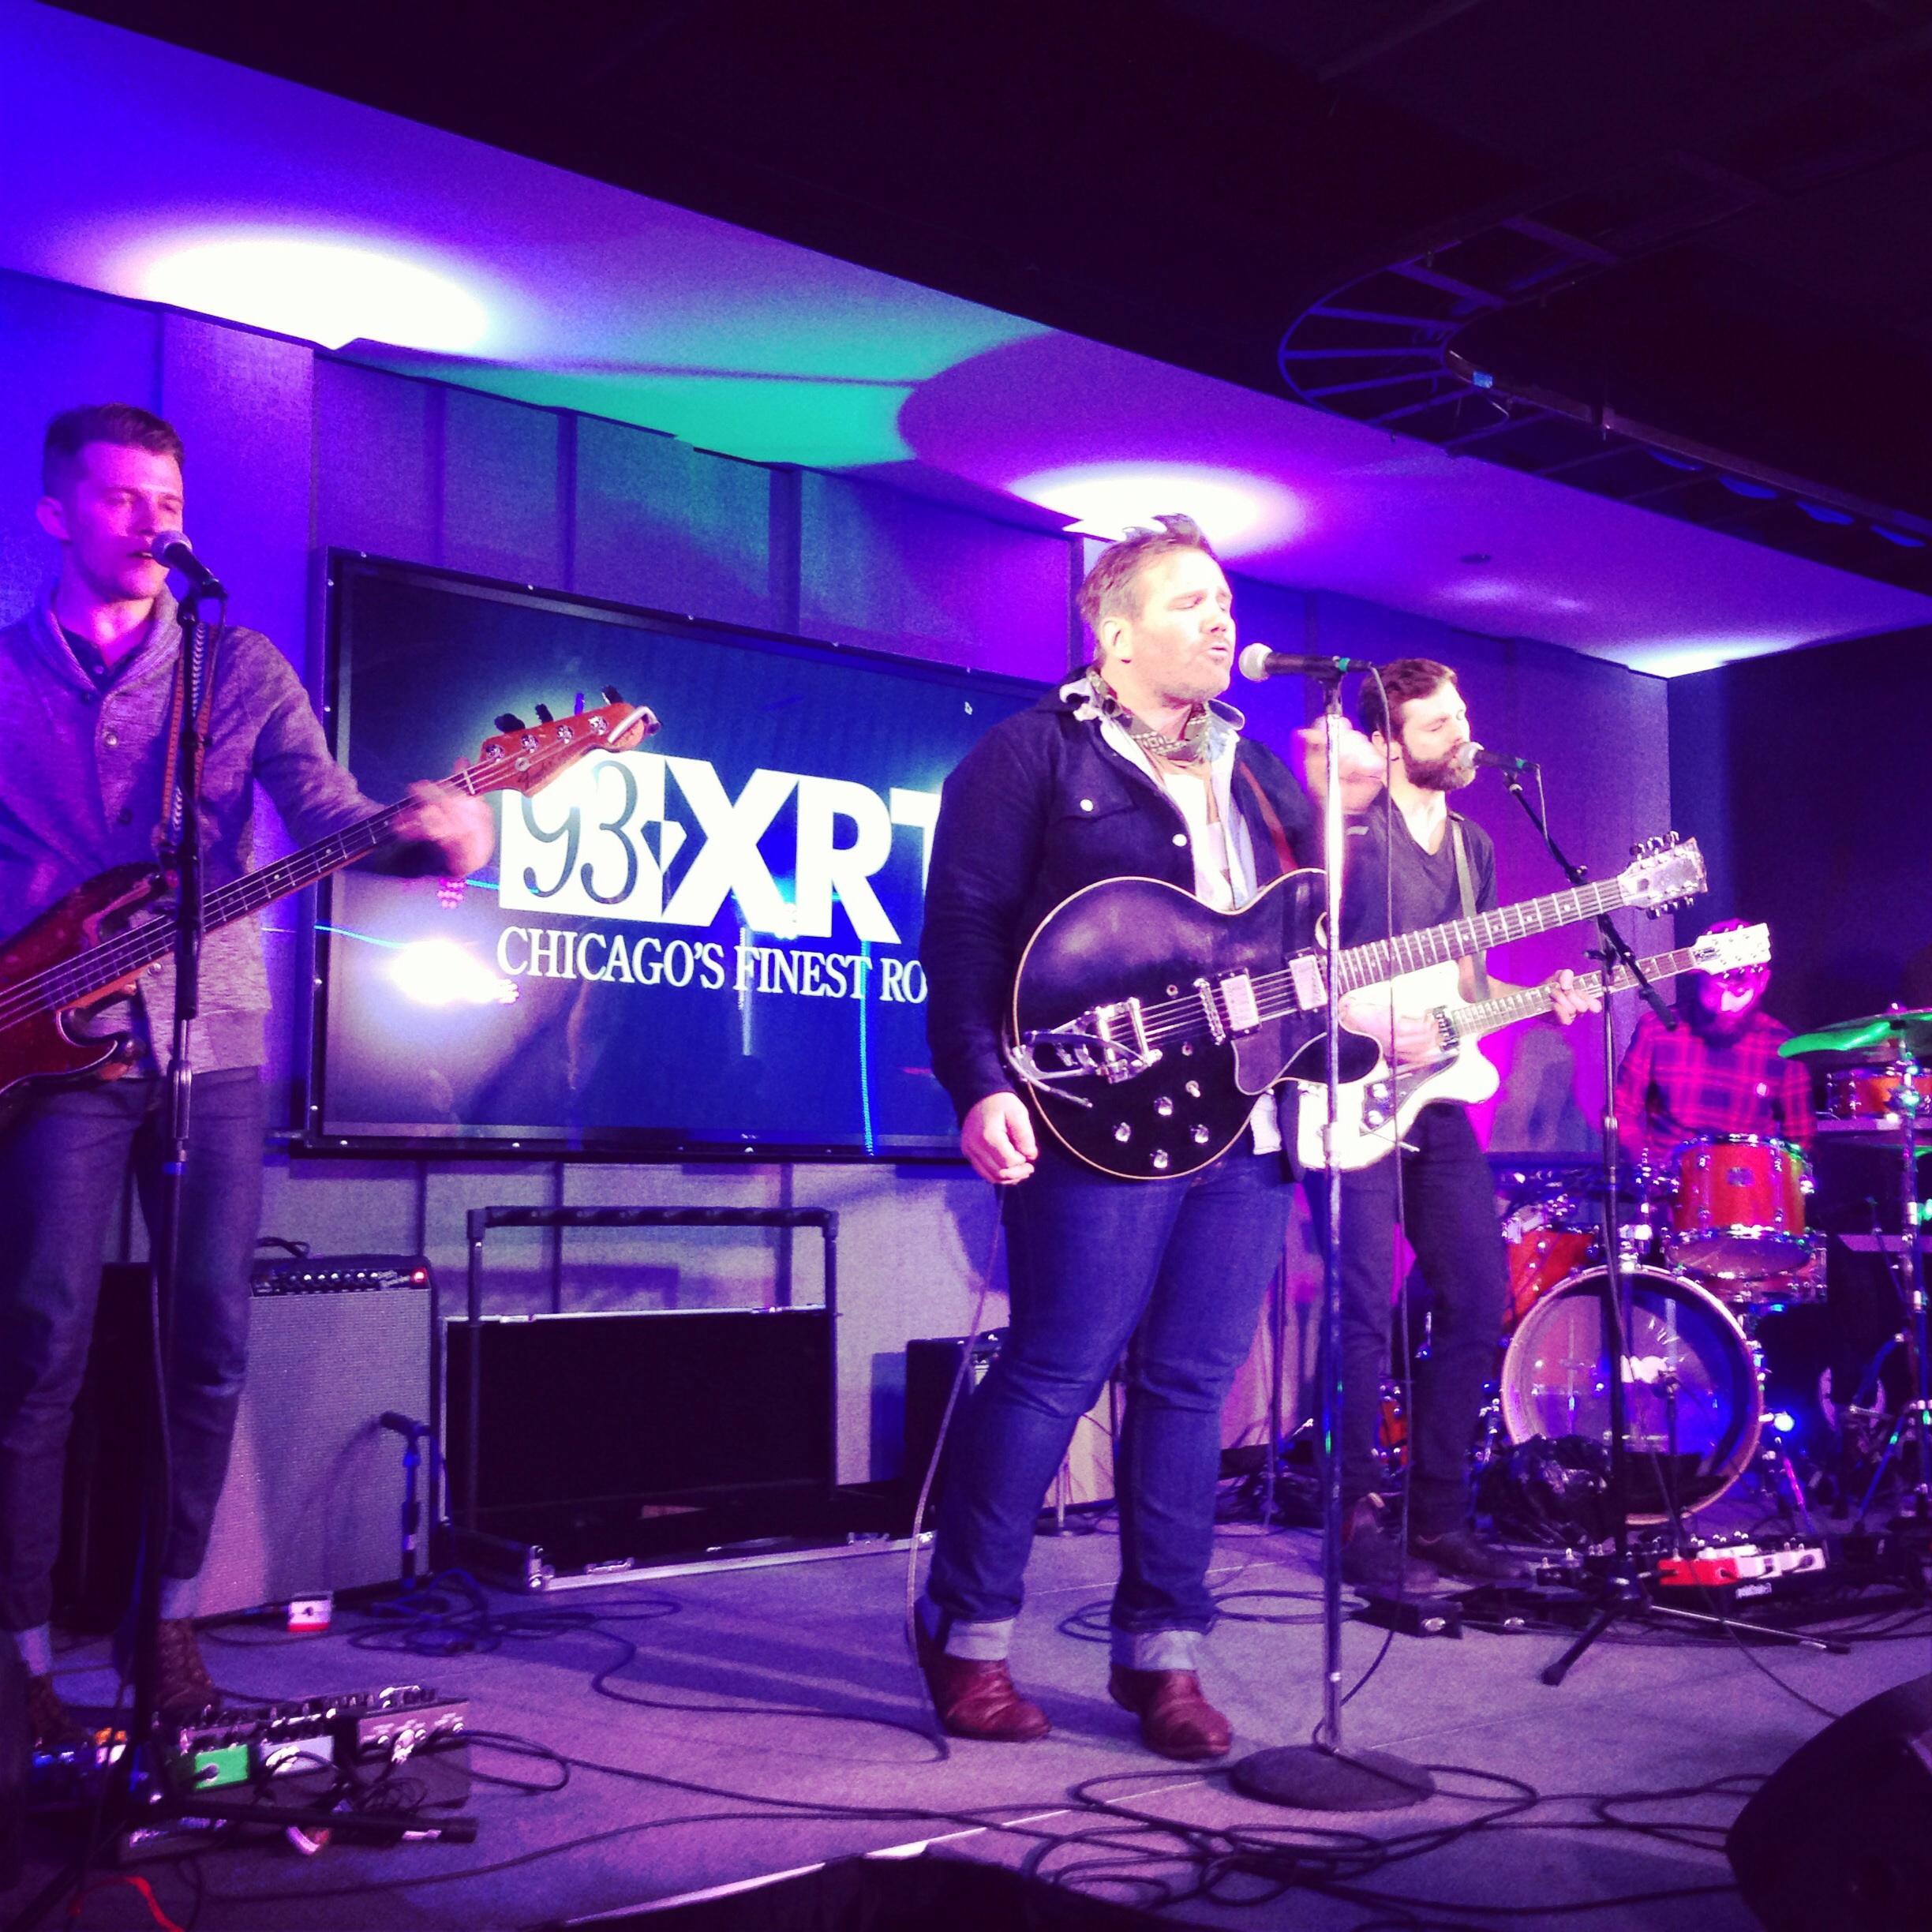 LEAGUES AT 93XRT